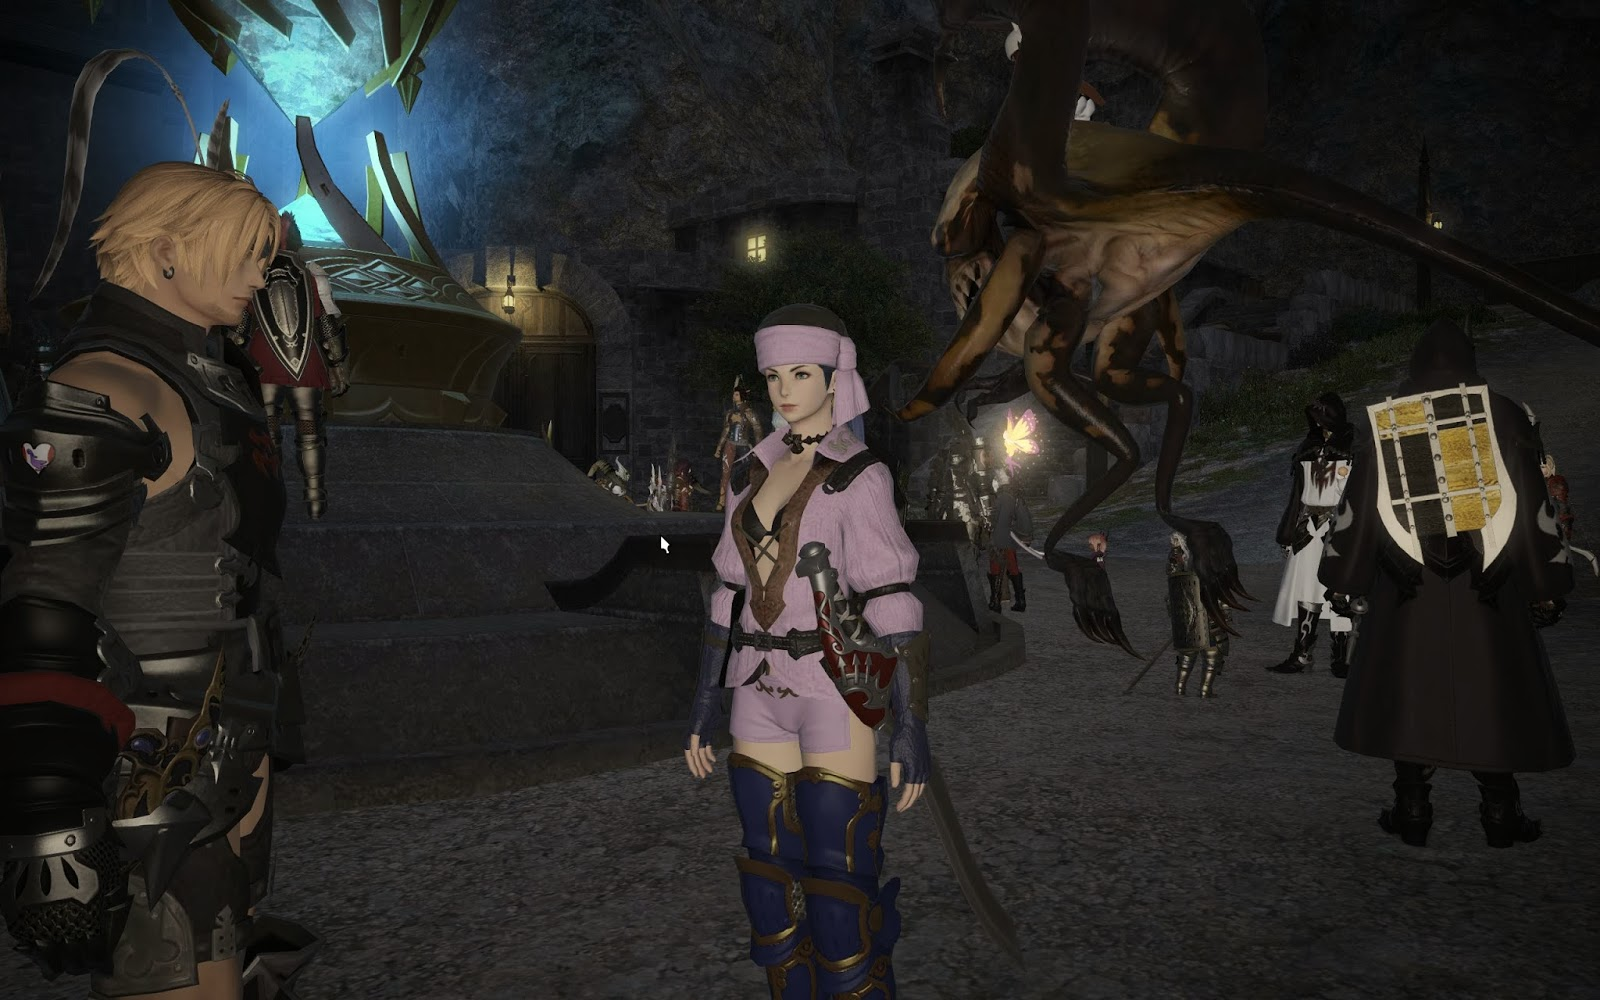 Final fantasy 14 naked mod xxx gorgeous models